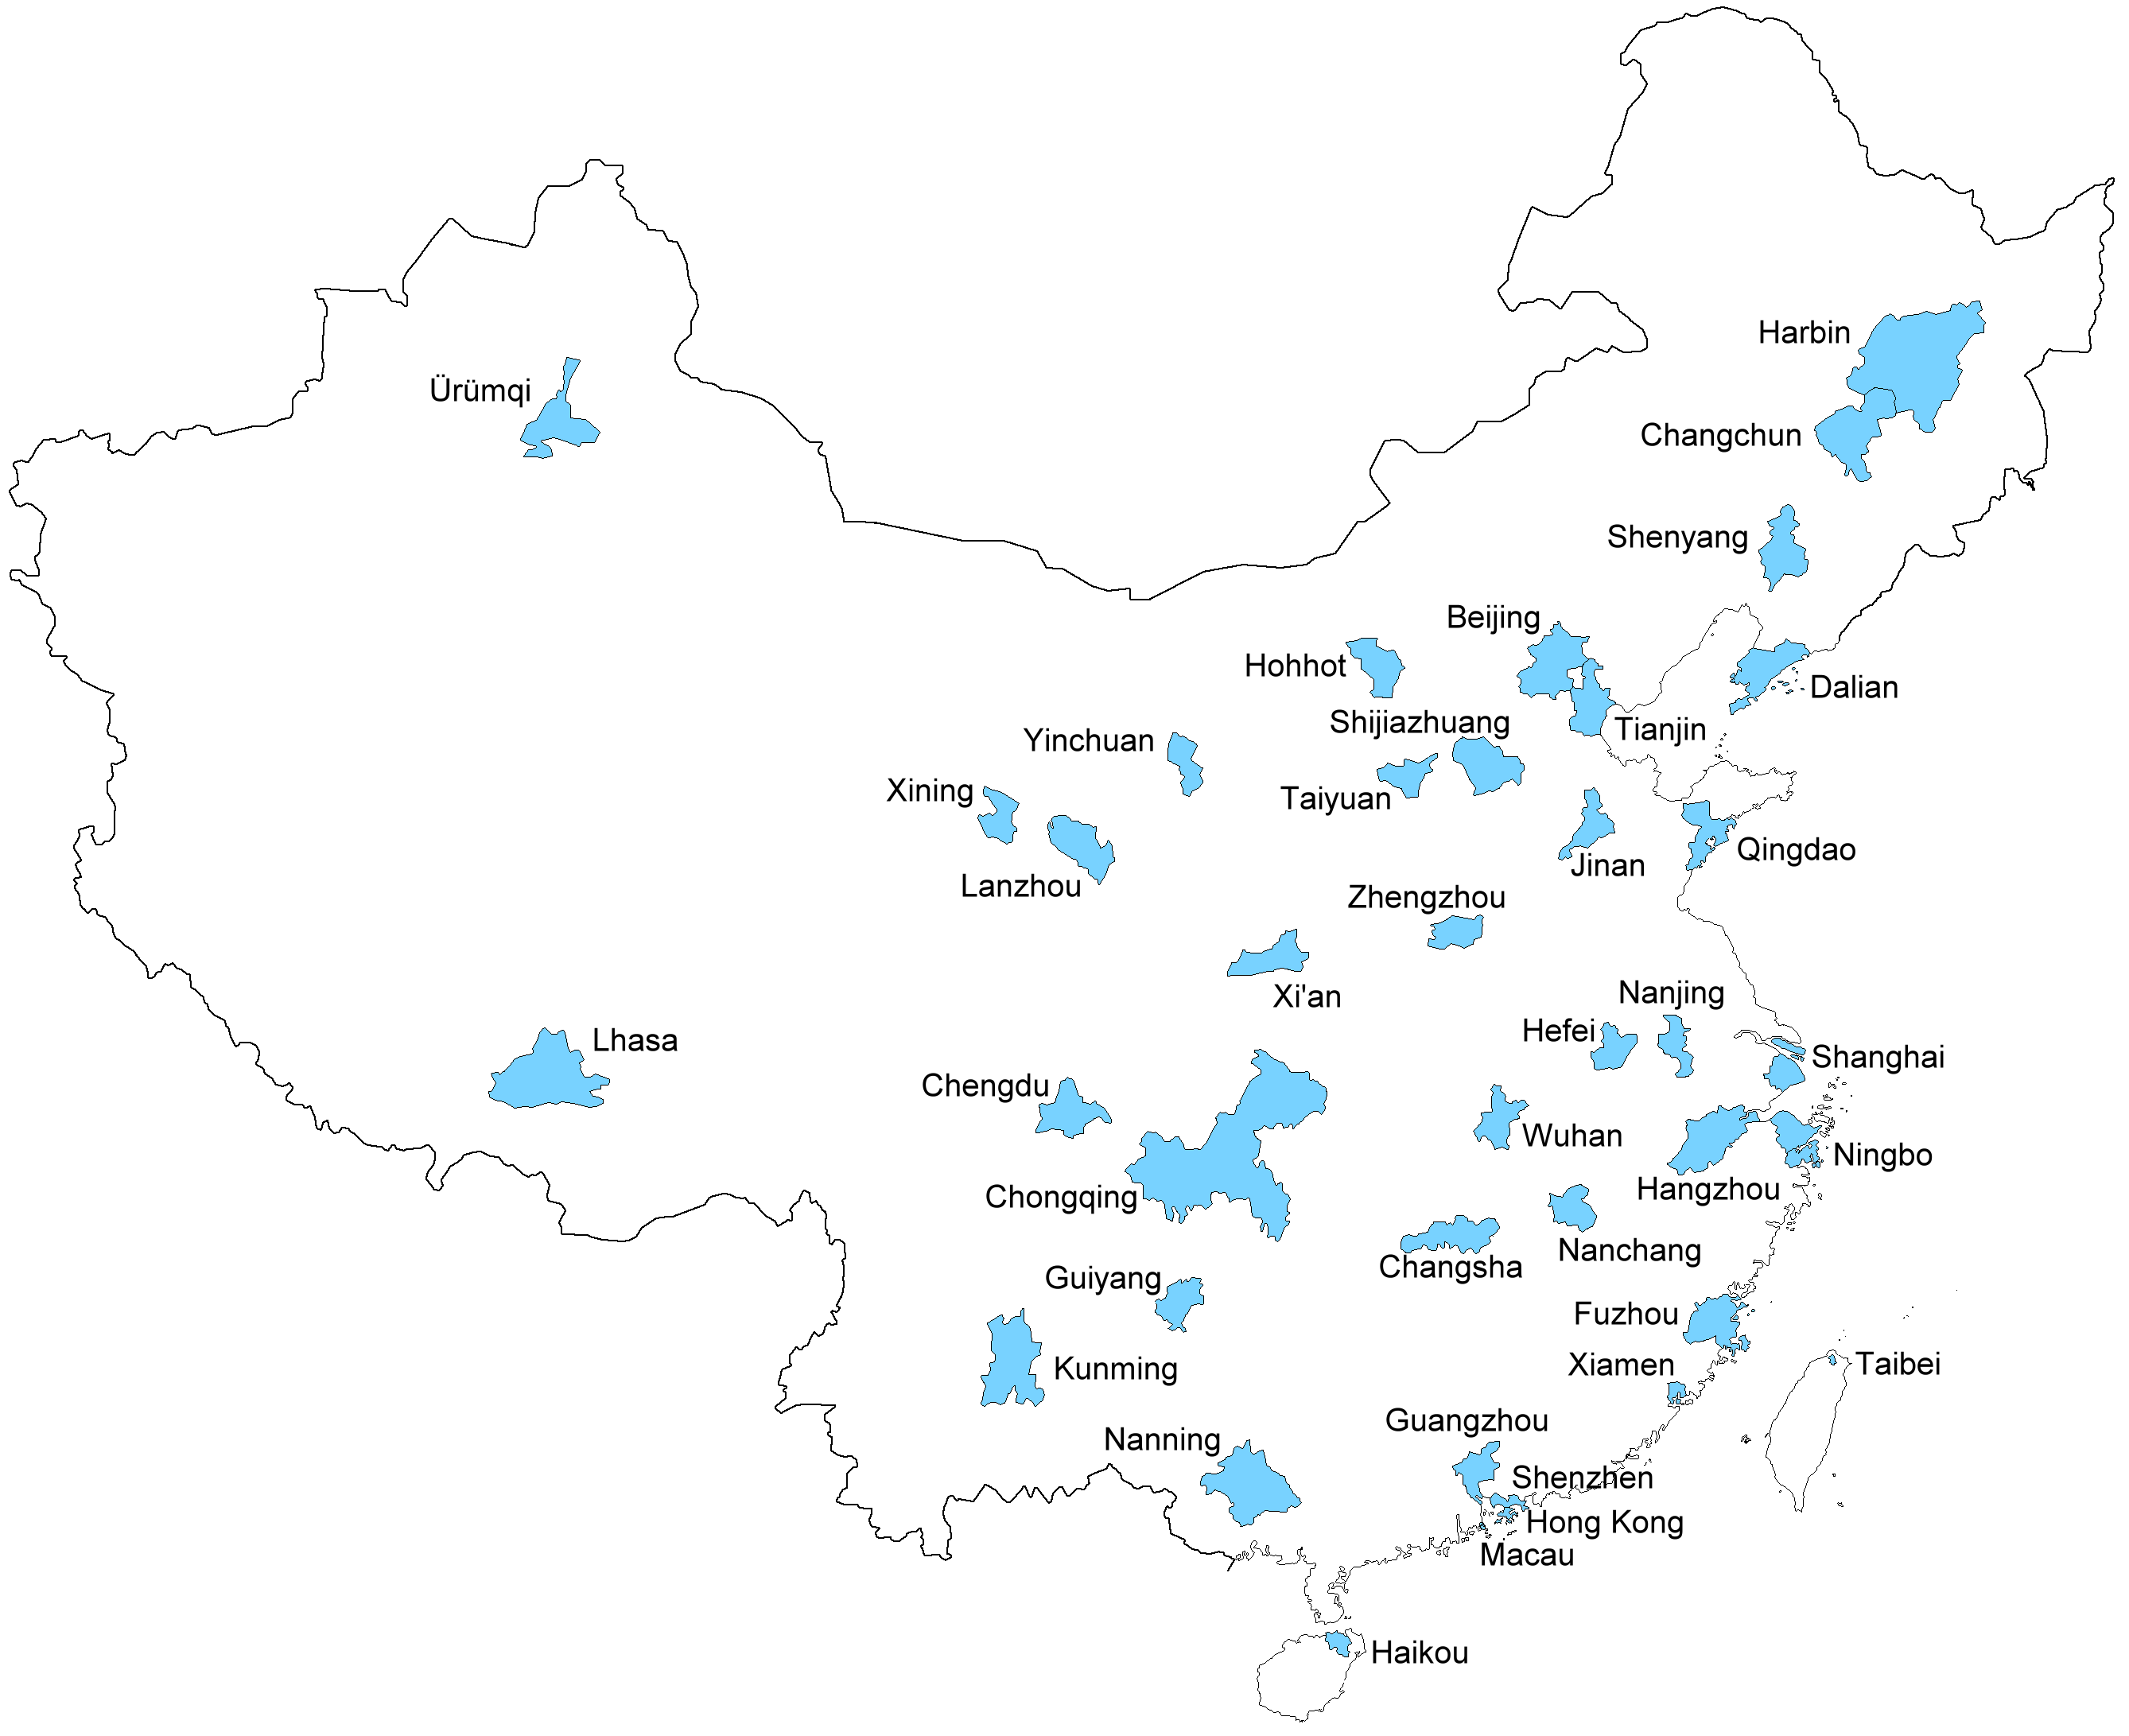 File:China province-level capitals and sub-provincial cities ... on map of china, map china guangxi region, map in us, map se usa, map japan, map china climate, map venezuela flag, map china deserts, map from europe, map western europe, map hong kong, map china travel, valencia-venezuela cities, map china airports, map china tourism, map china provinces, map of asia, map in europe, map north africa and middle east, map in india,